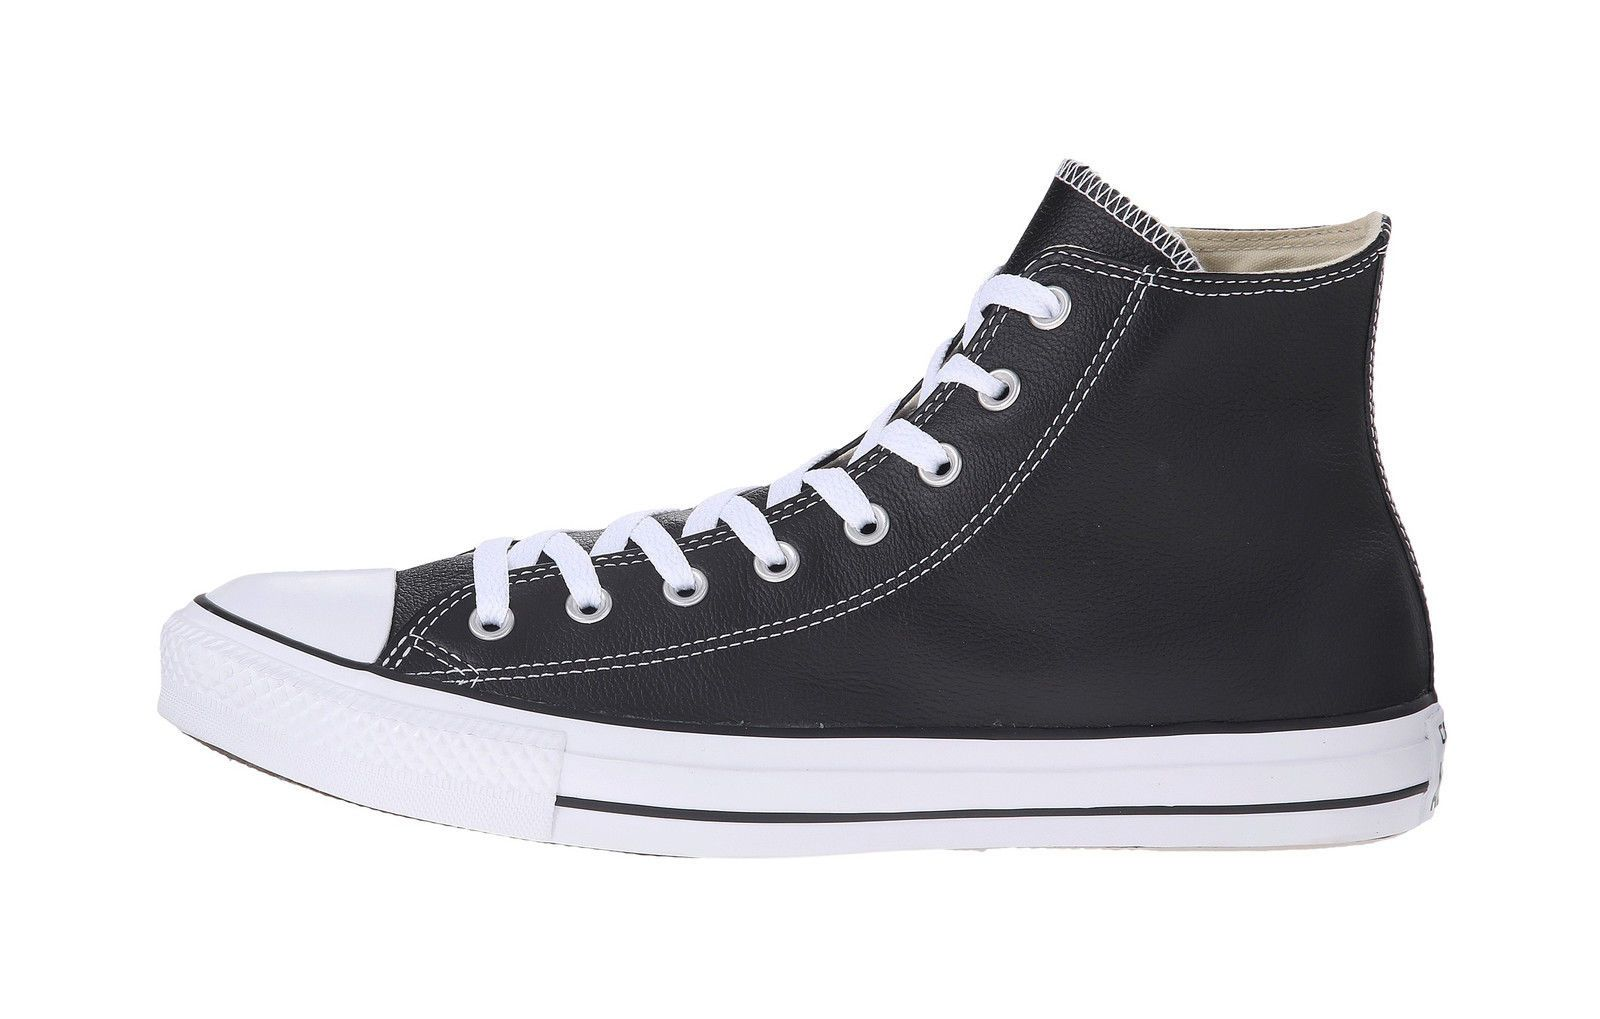 bf99dd00e868 Converse Men Unisex All Star Hi Top Leather Shoes Black White Chuck Taylor   63.0 End Date